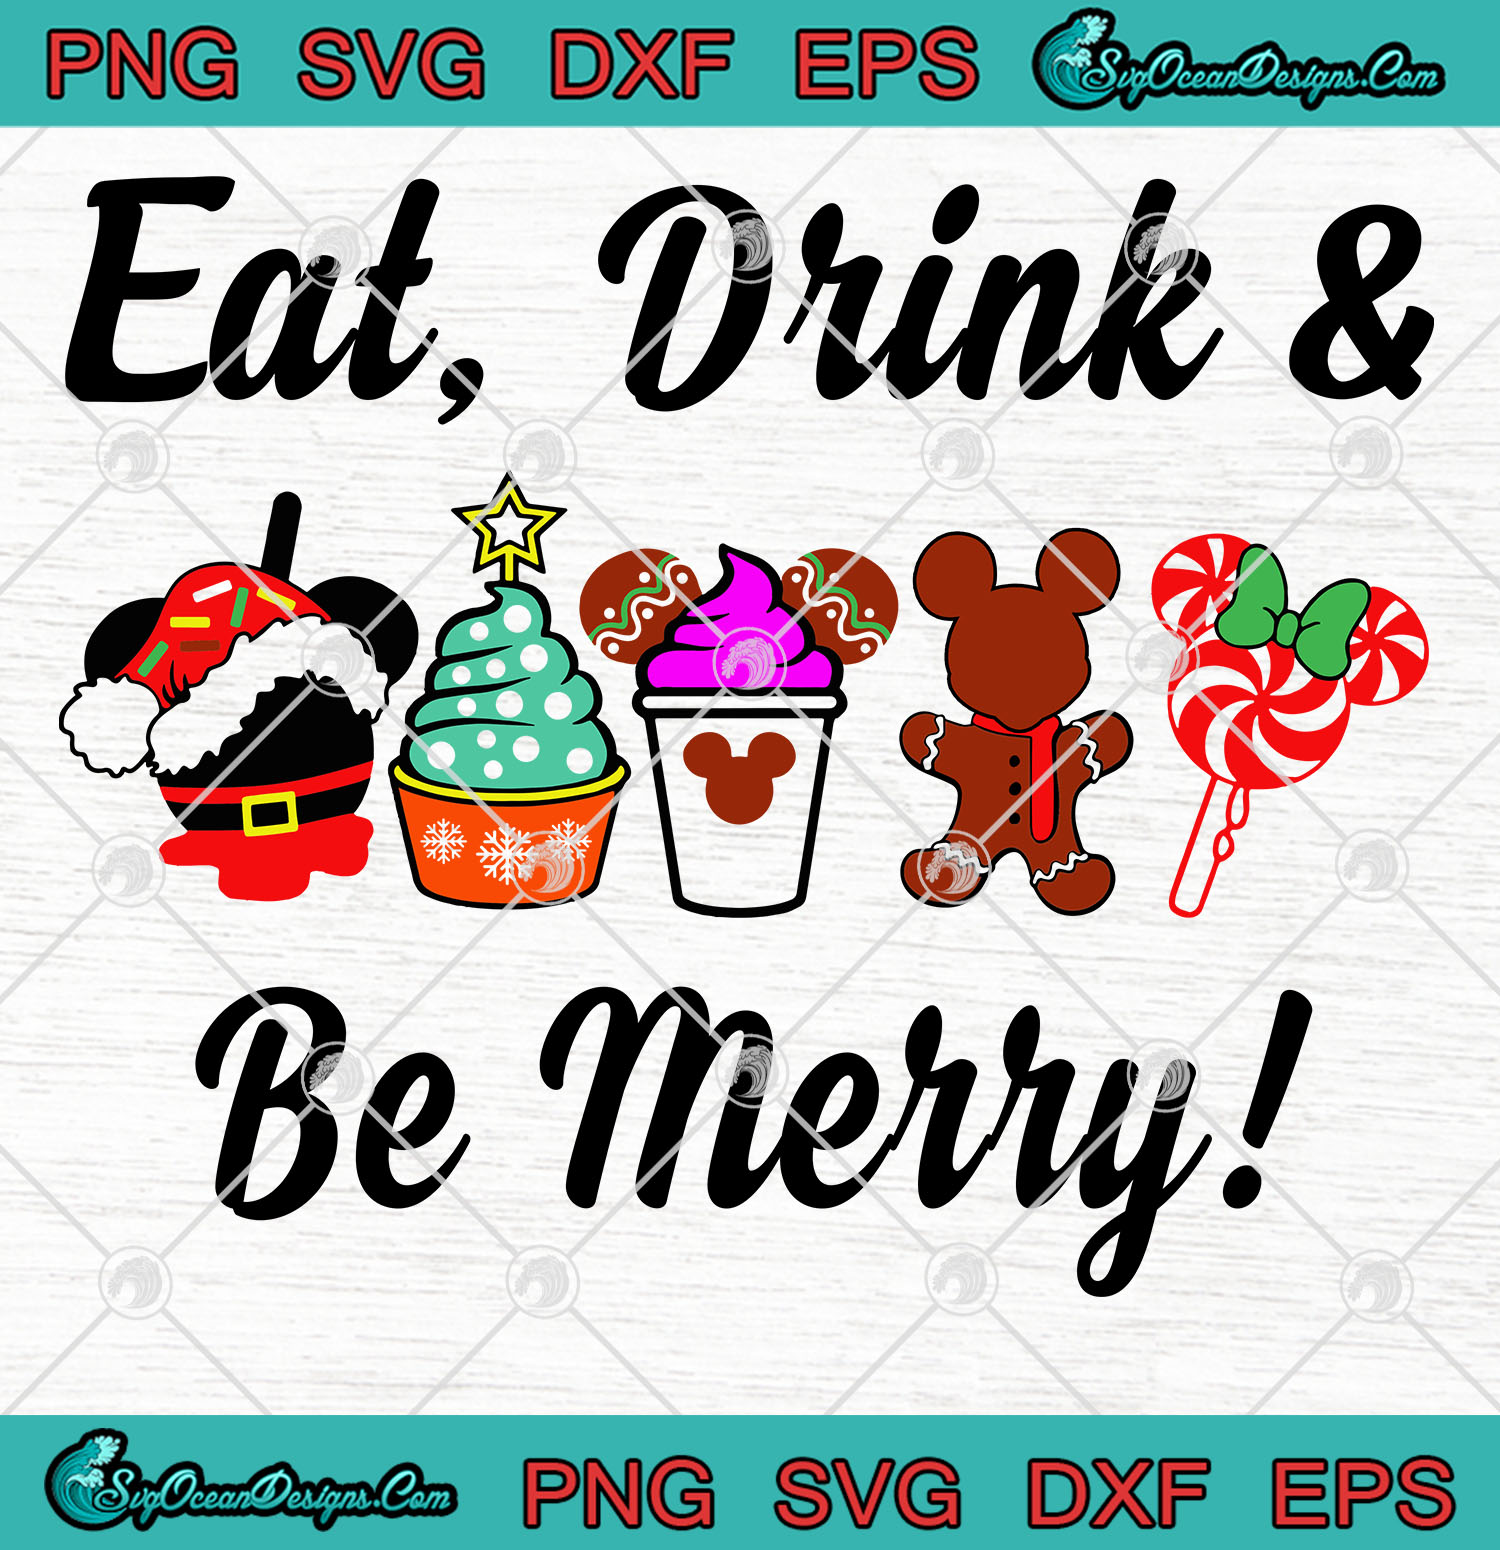 Disney Snacks Christmas Eat Drink And Be Merry Christmas Svg Svg Png Eps Dxf Cricut File Silhouette Cameo Svg Designs Digital Download